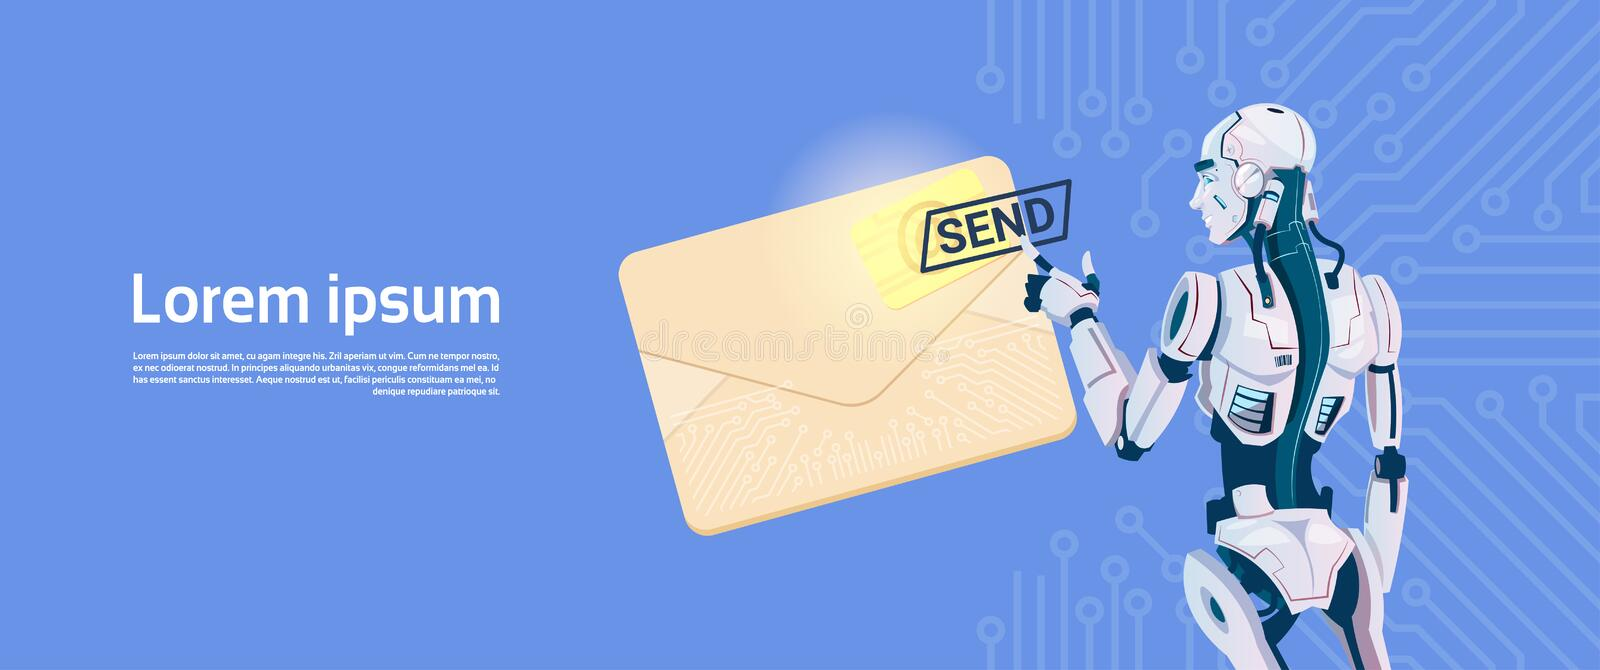 Modern Robot Hold Envelope Sending Email Message, Futuristic Artificial Intelligence Mechanism Technology. Flat Vector Illustration royalty free illustration